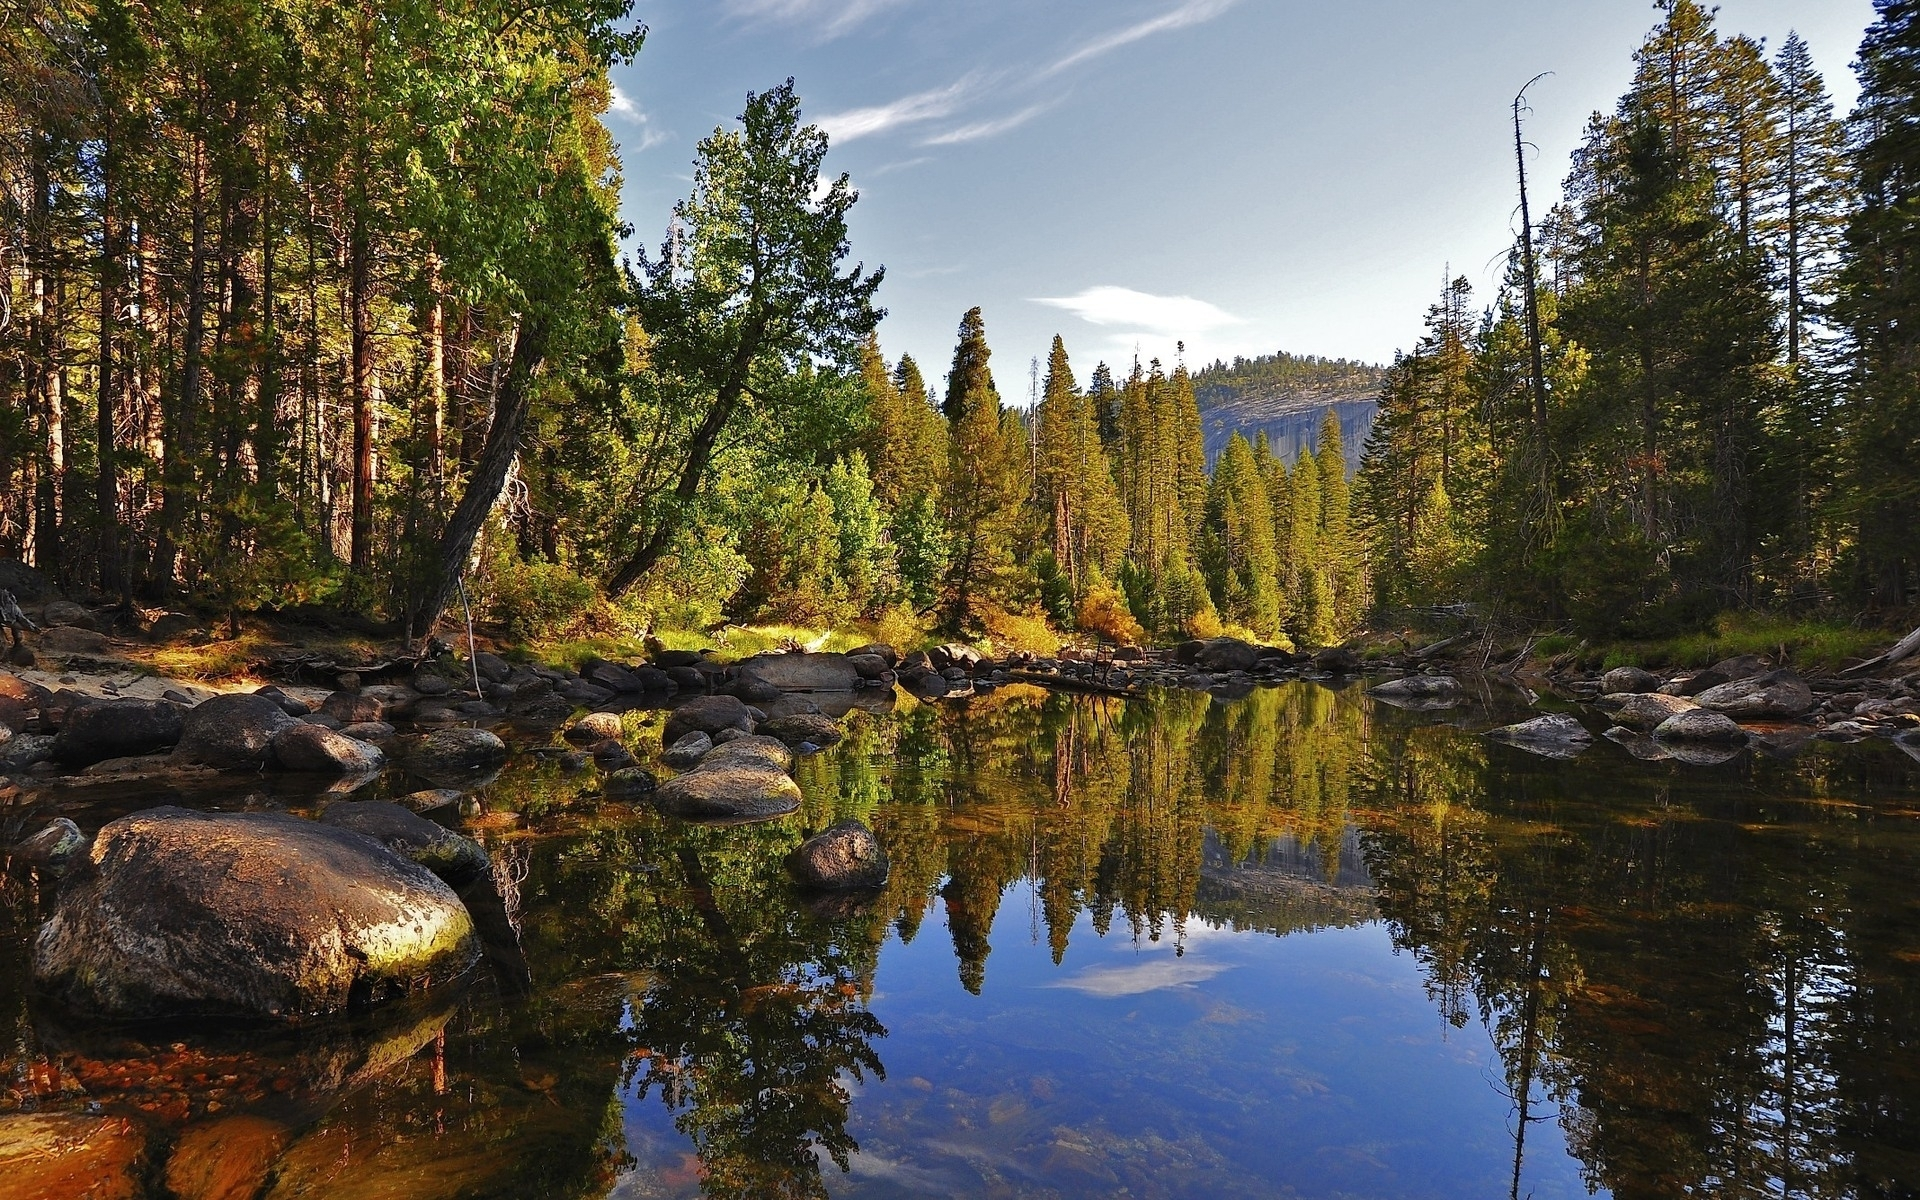 49884 download wallpaper Landscape, Nature, Trees, Lakes screensavers and pictures for free